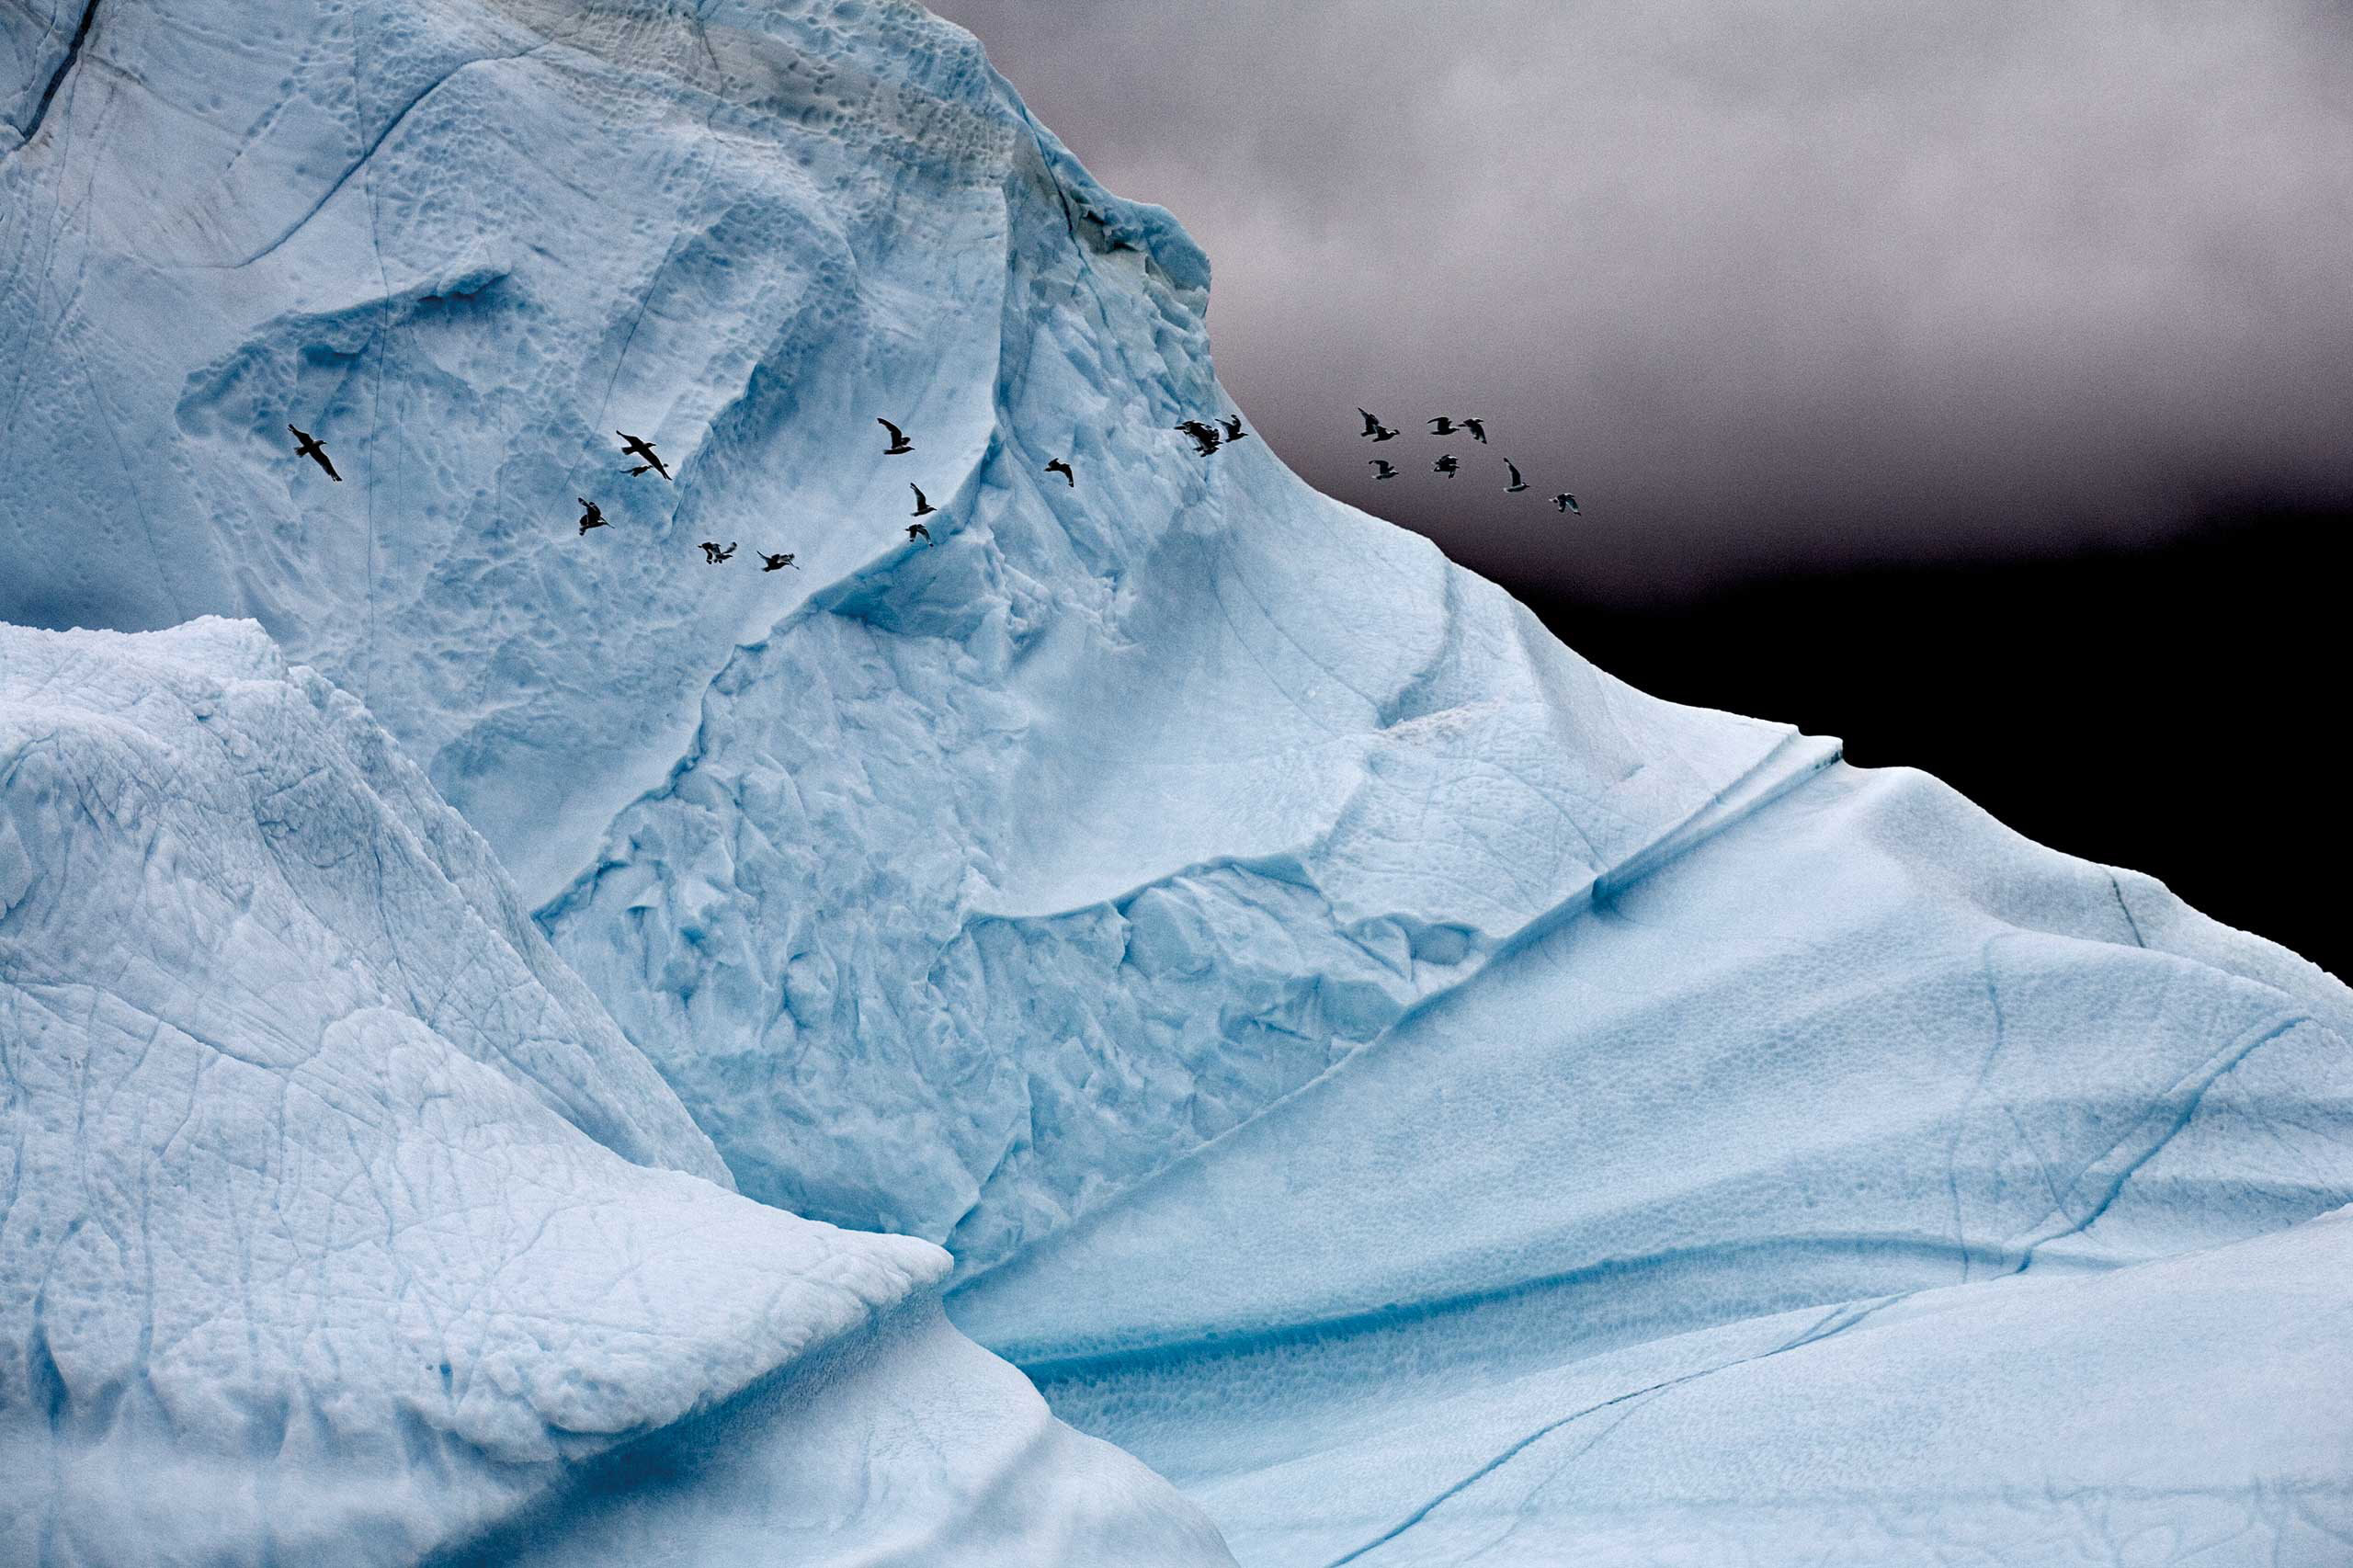 <i>Iceberg Detail with Kittiwake Gulls</i> Eastern Greenland, August 2006